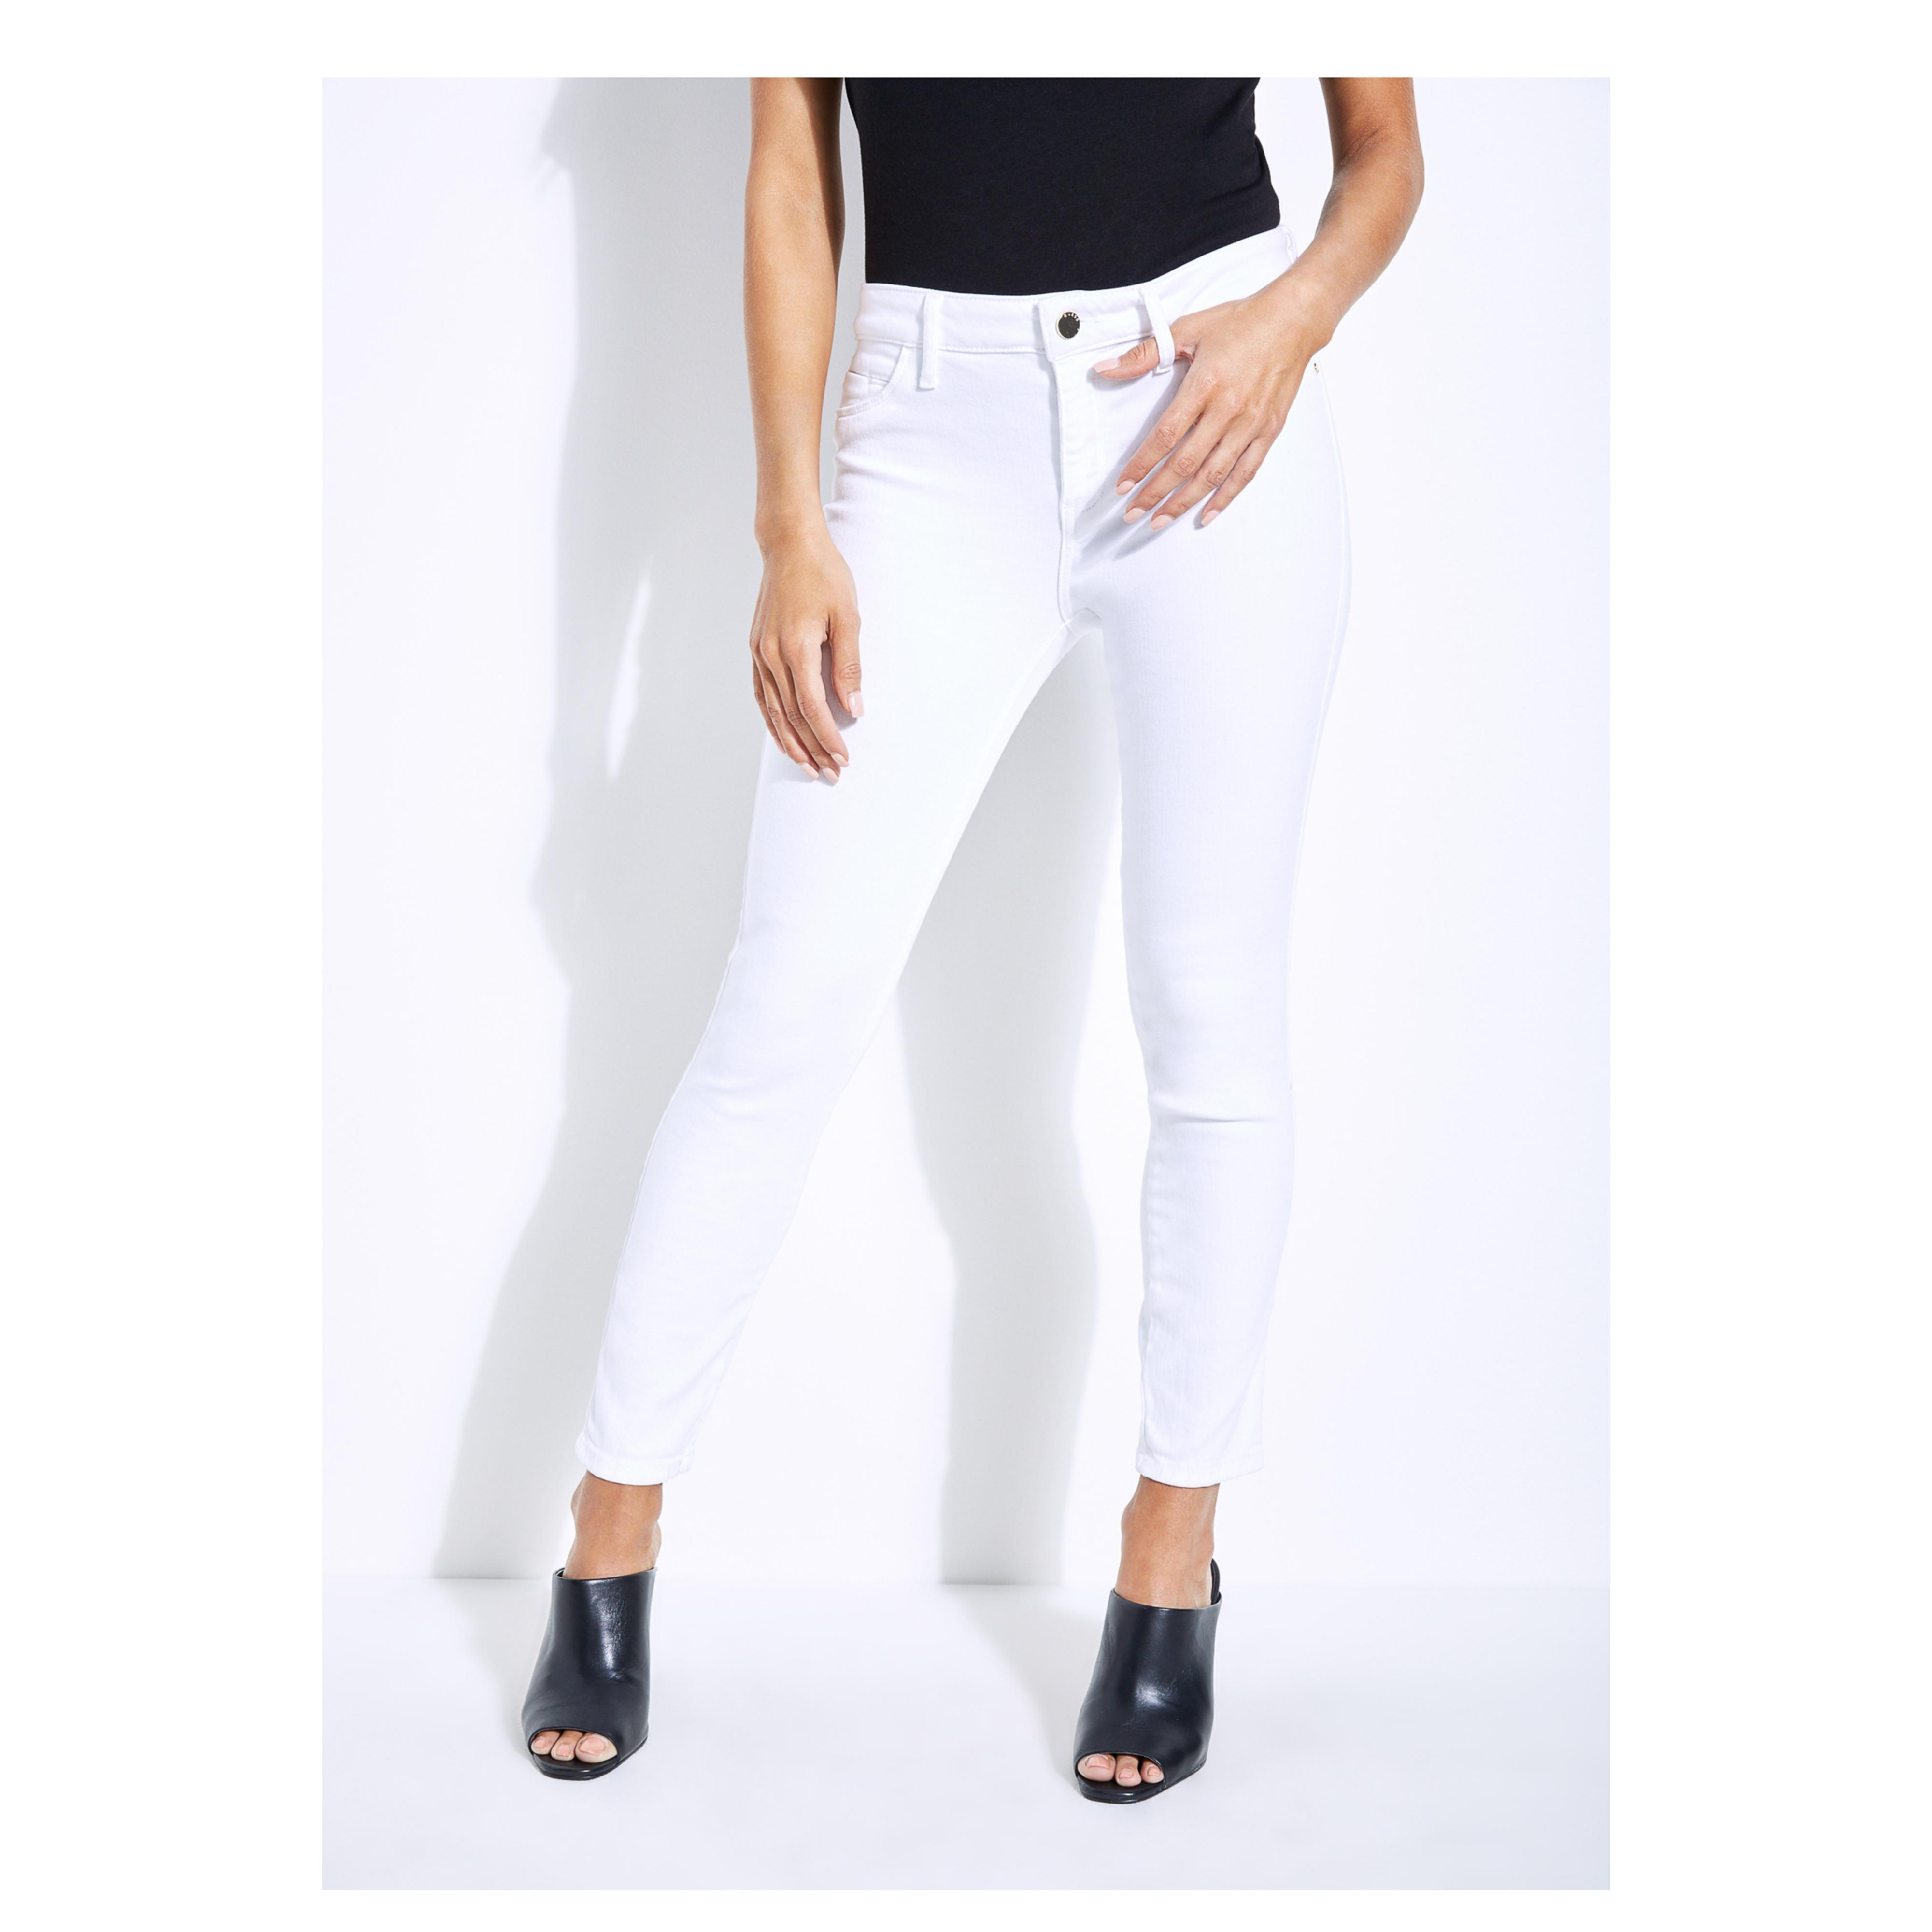 Guess. Women's White Sexy Curve Cropped Skinny Jeans